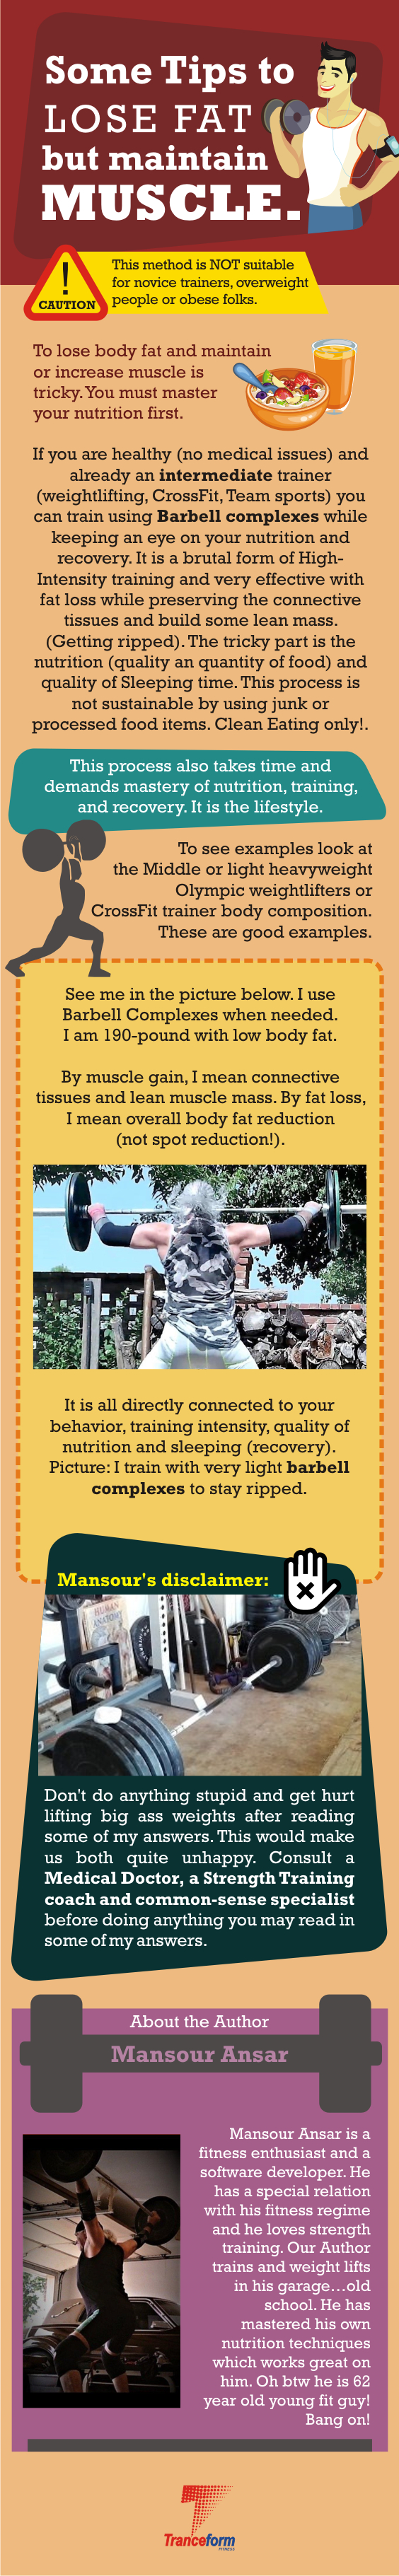 Tips To Lose Fat and gain Muscle